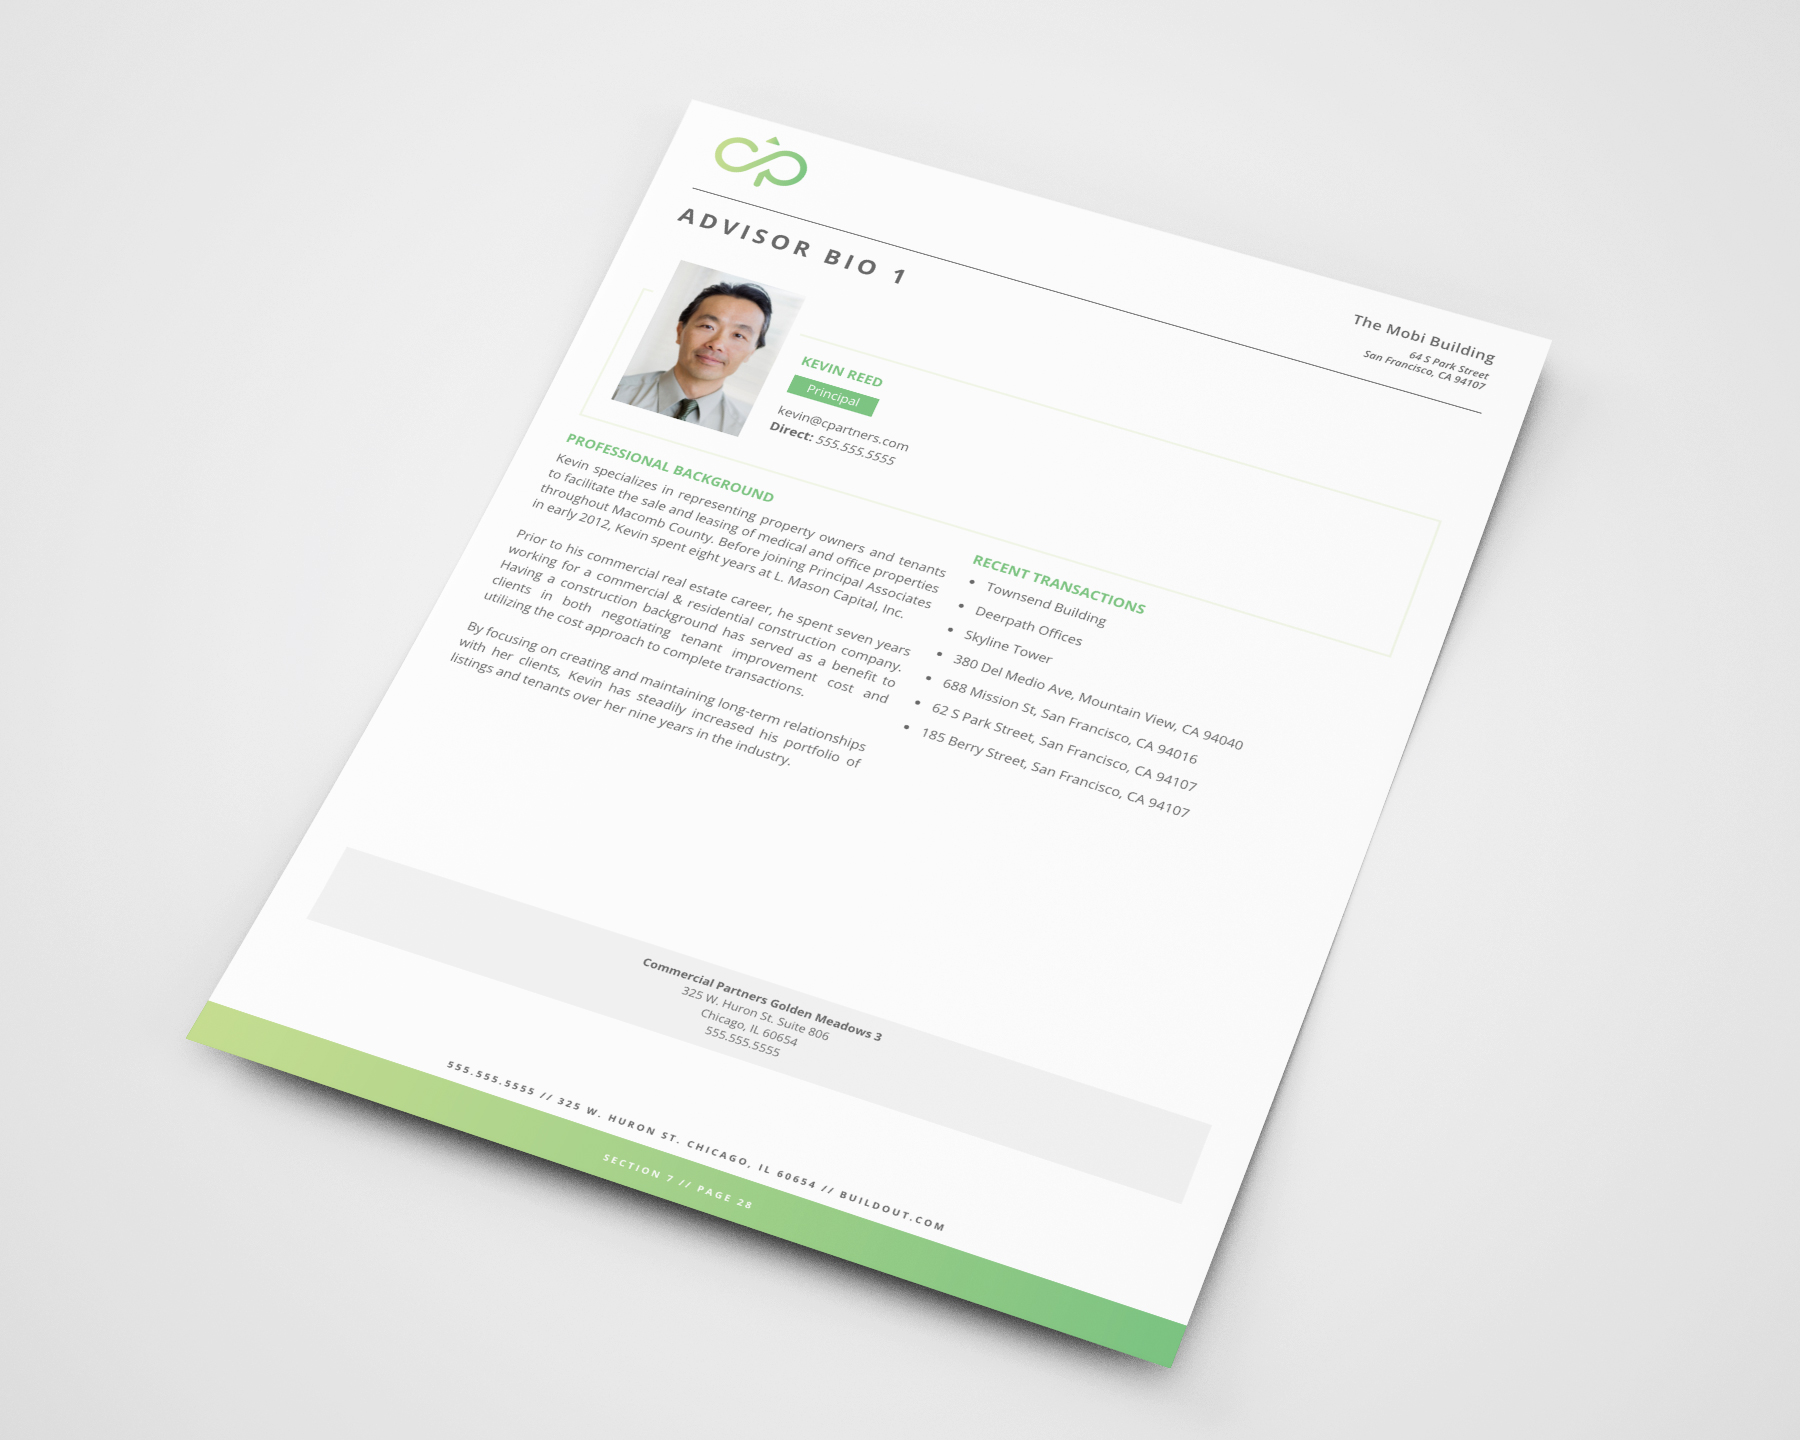 An example Advisor Bio page from a proposal created in Buildout